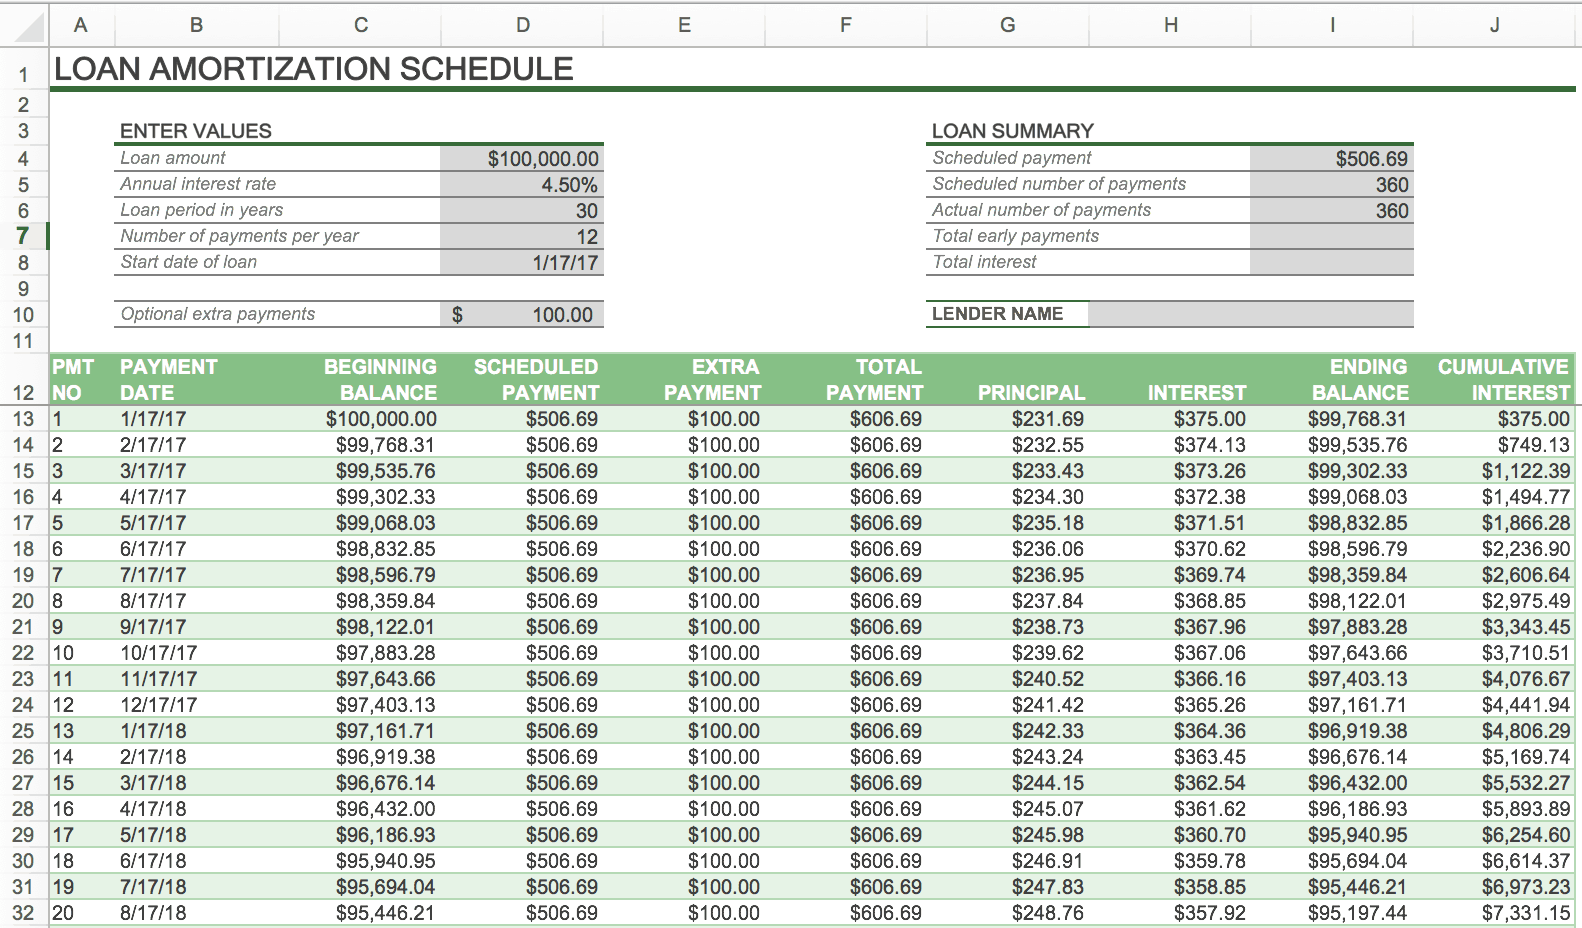 Amortization Schedule With Balloon Payment Excel Template from www.templateral.com